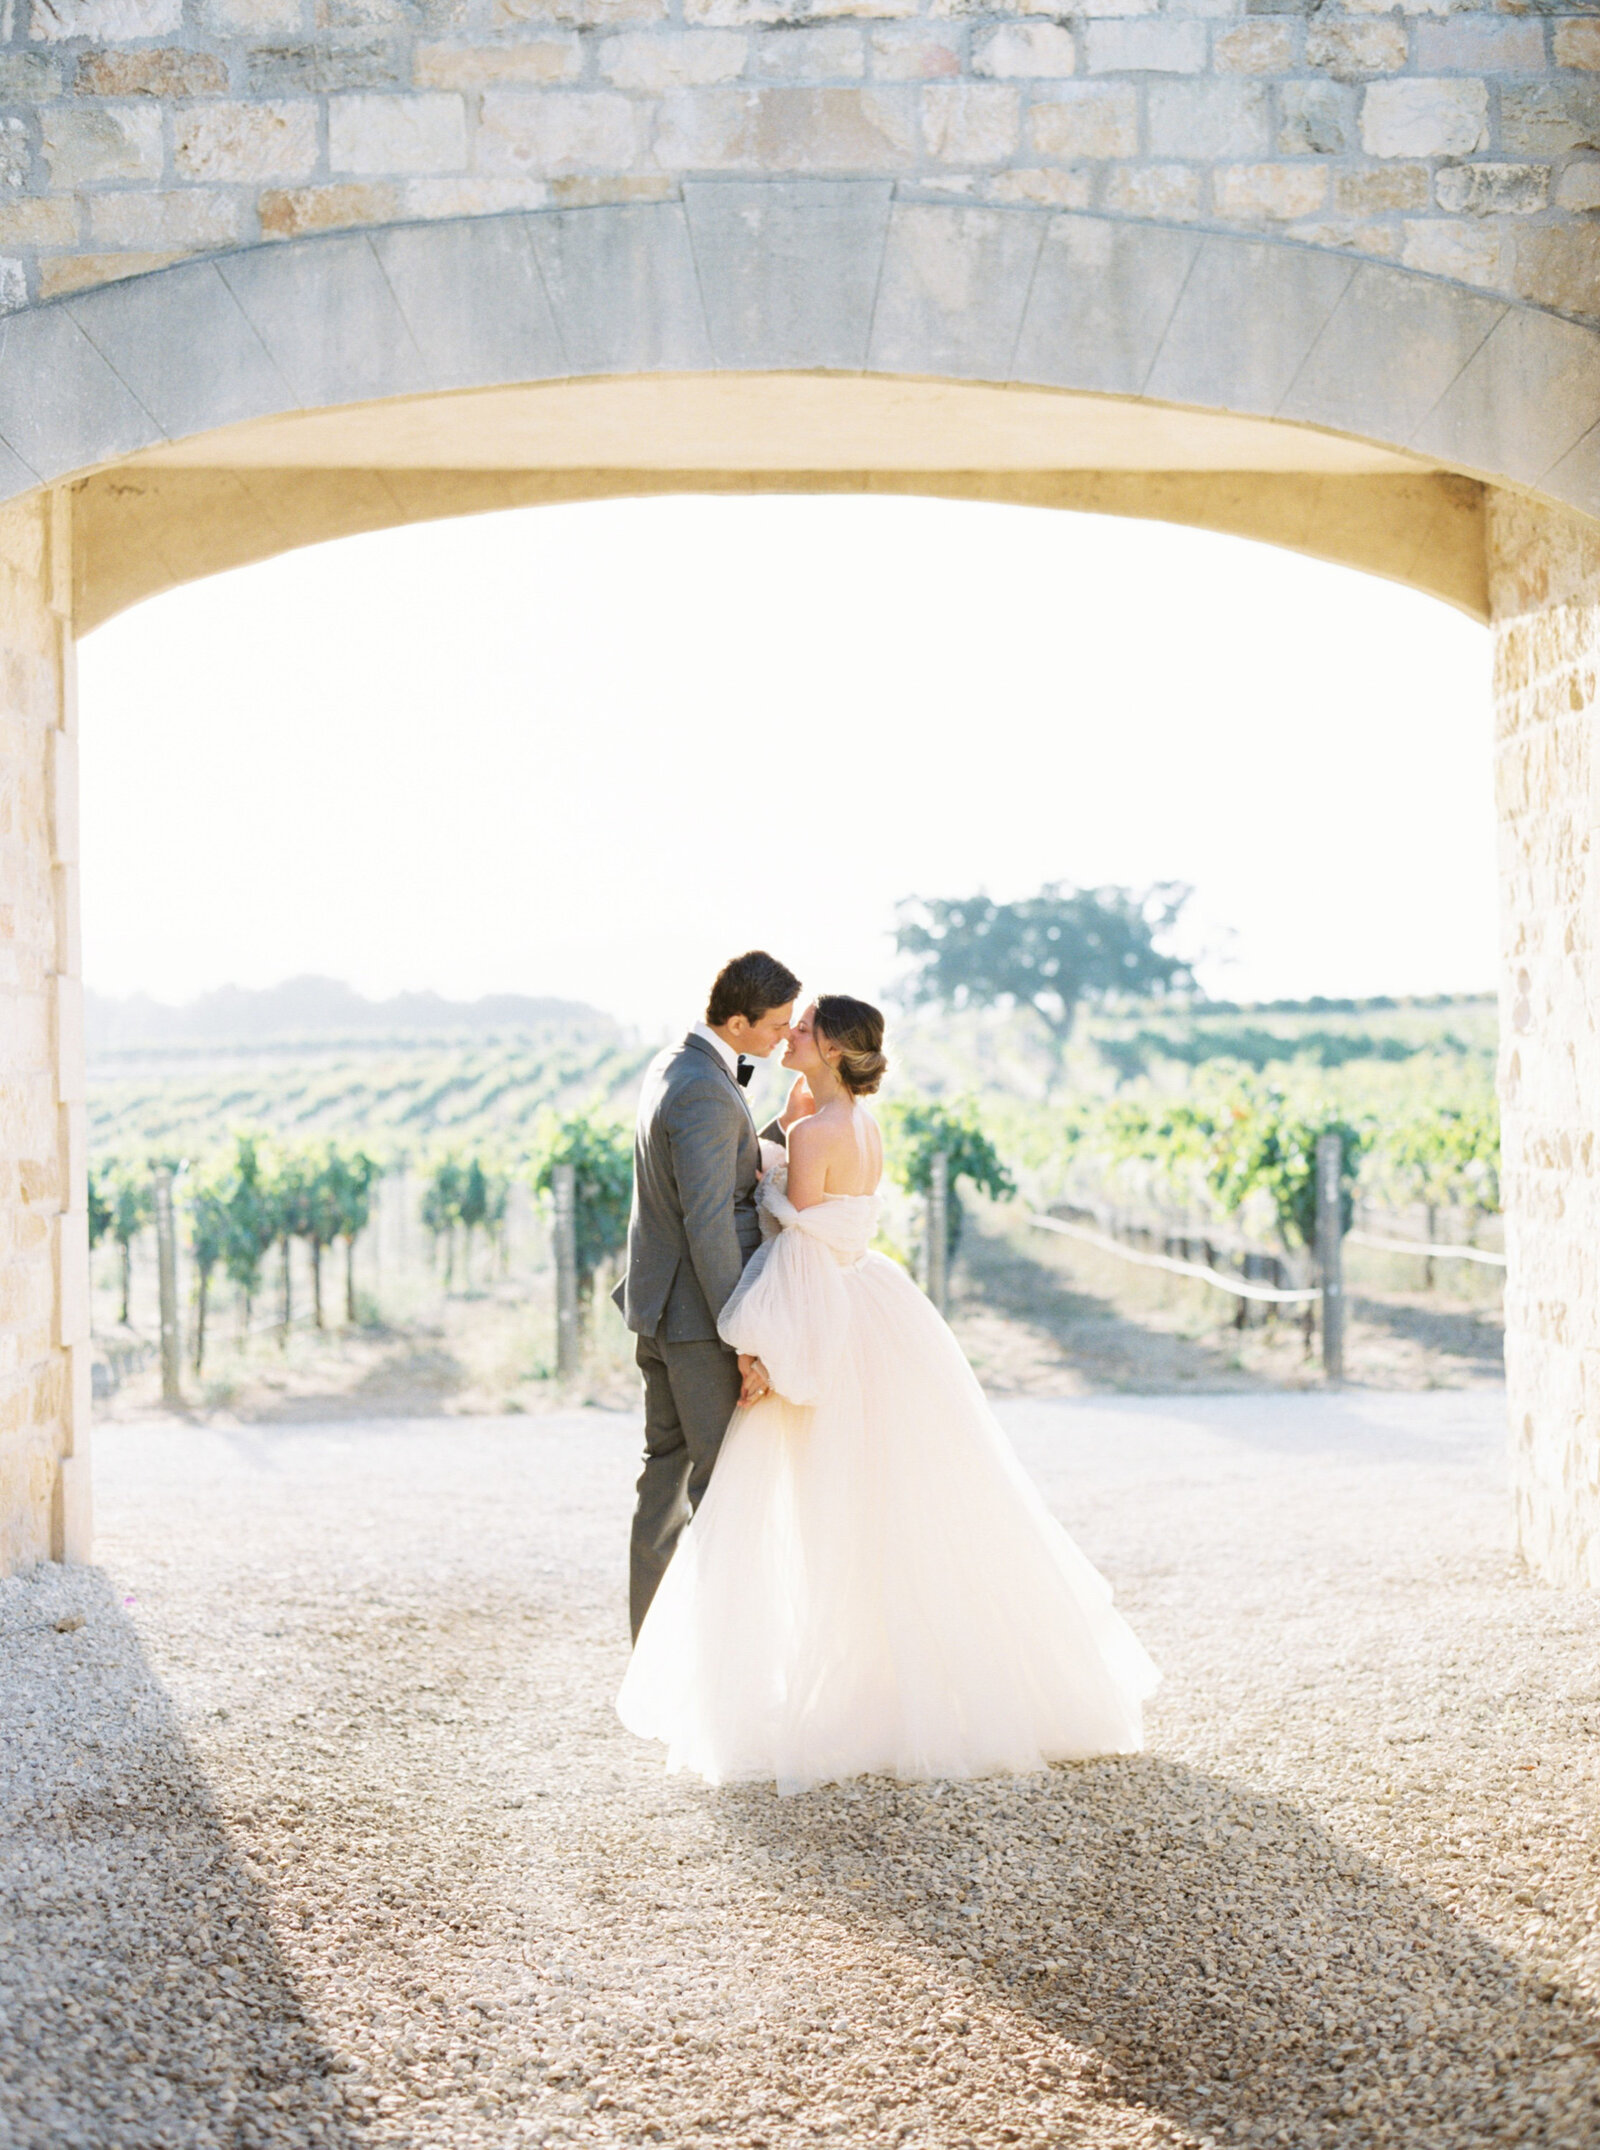 KendallAnnPhotography - Sunstone Winery-50